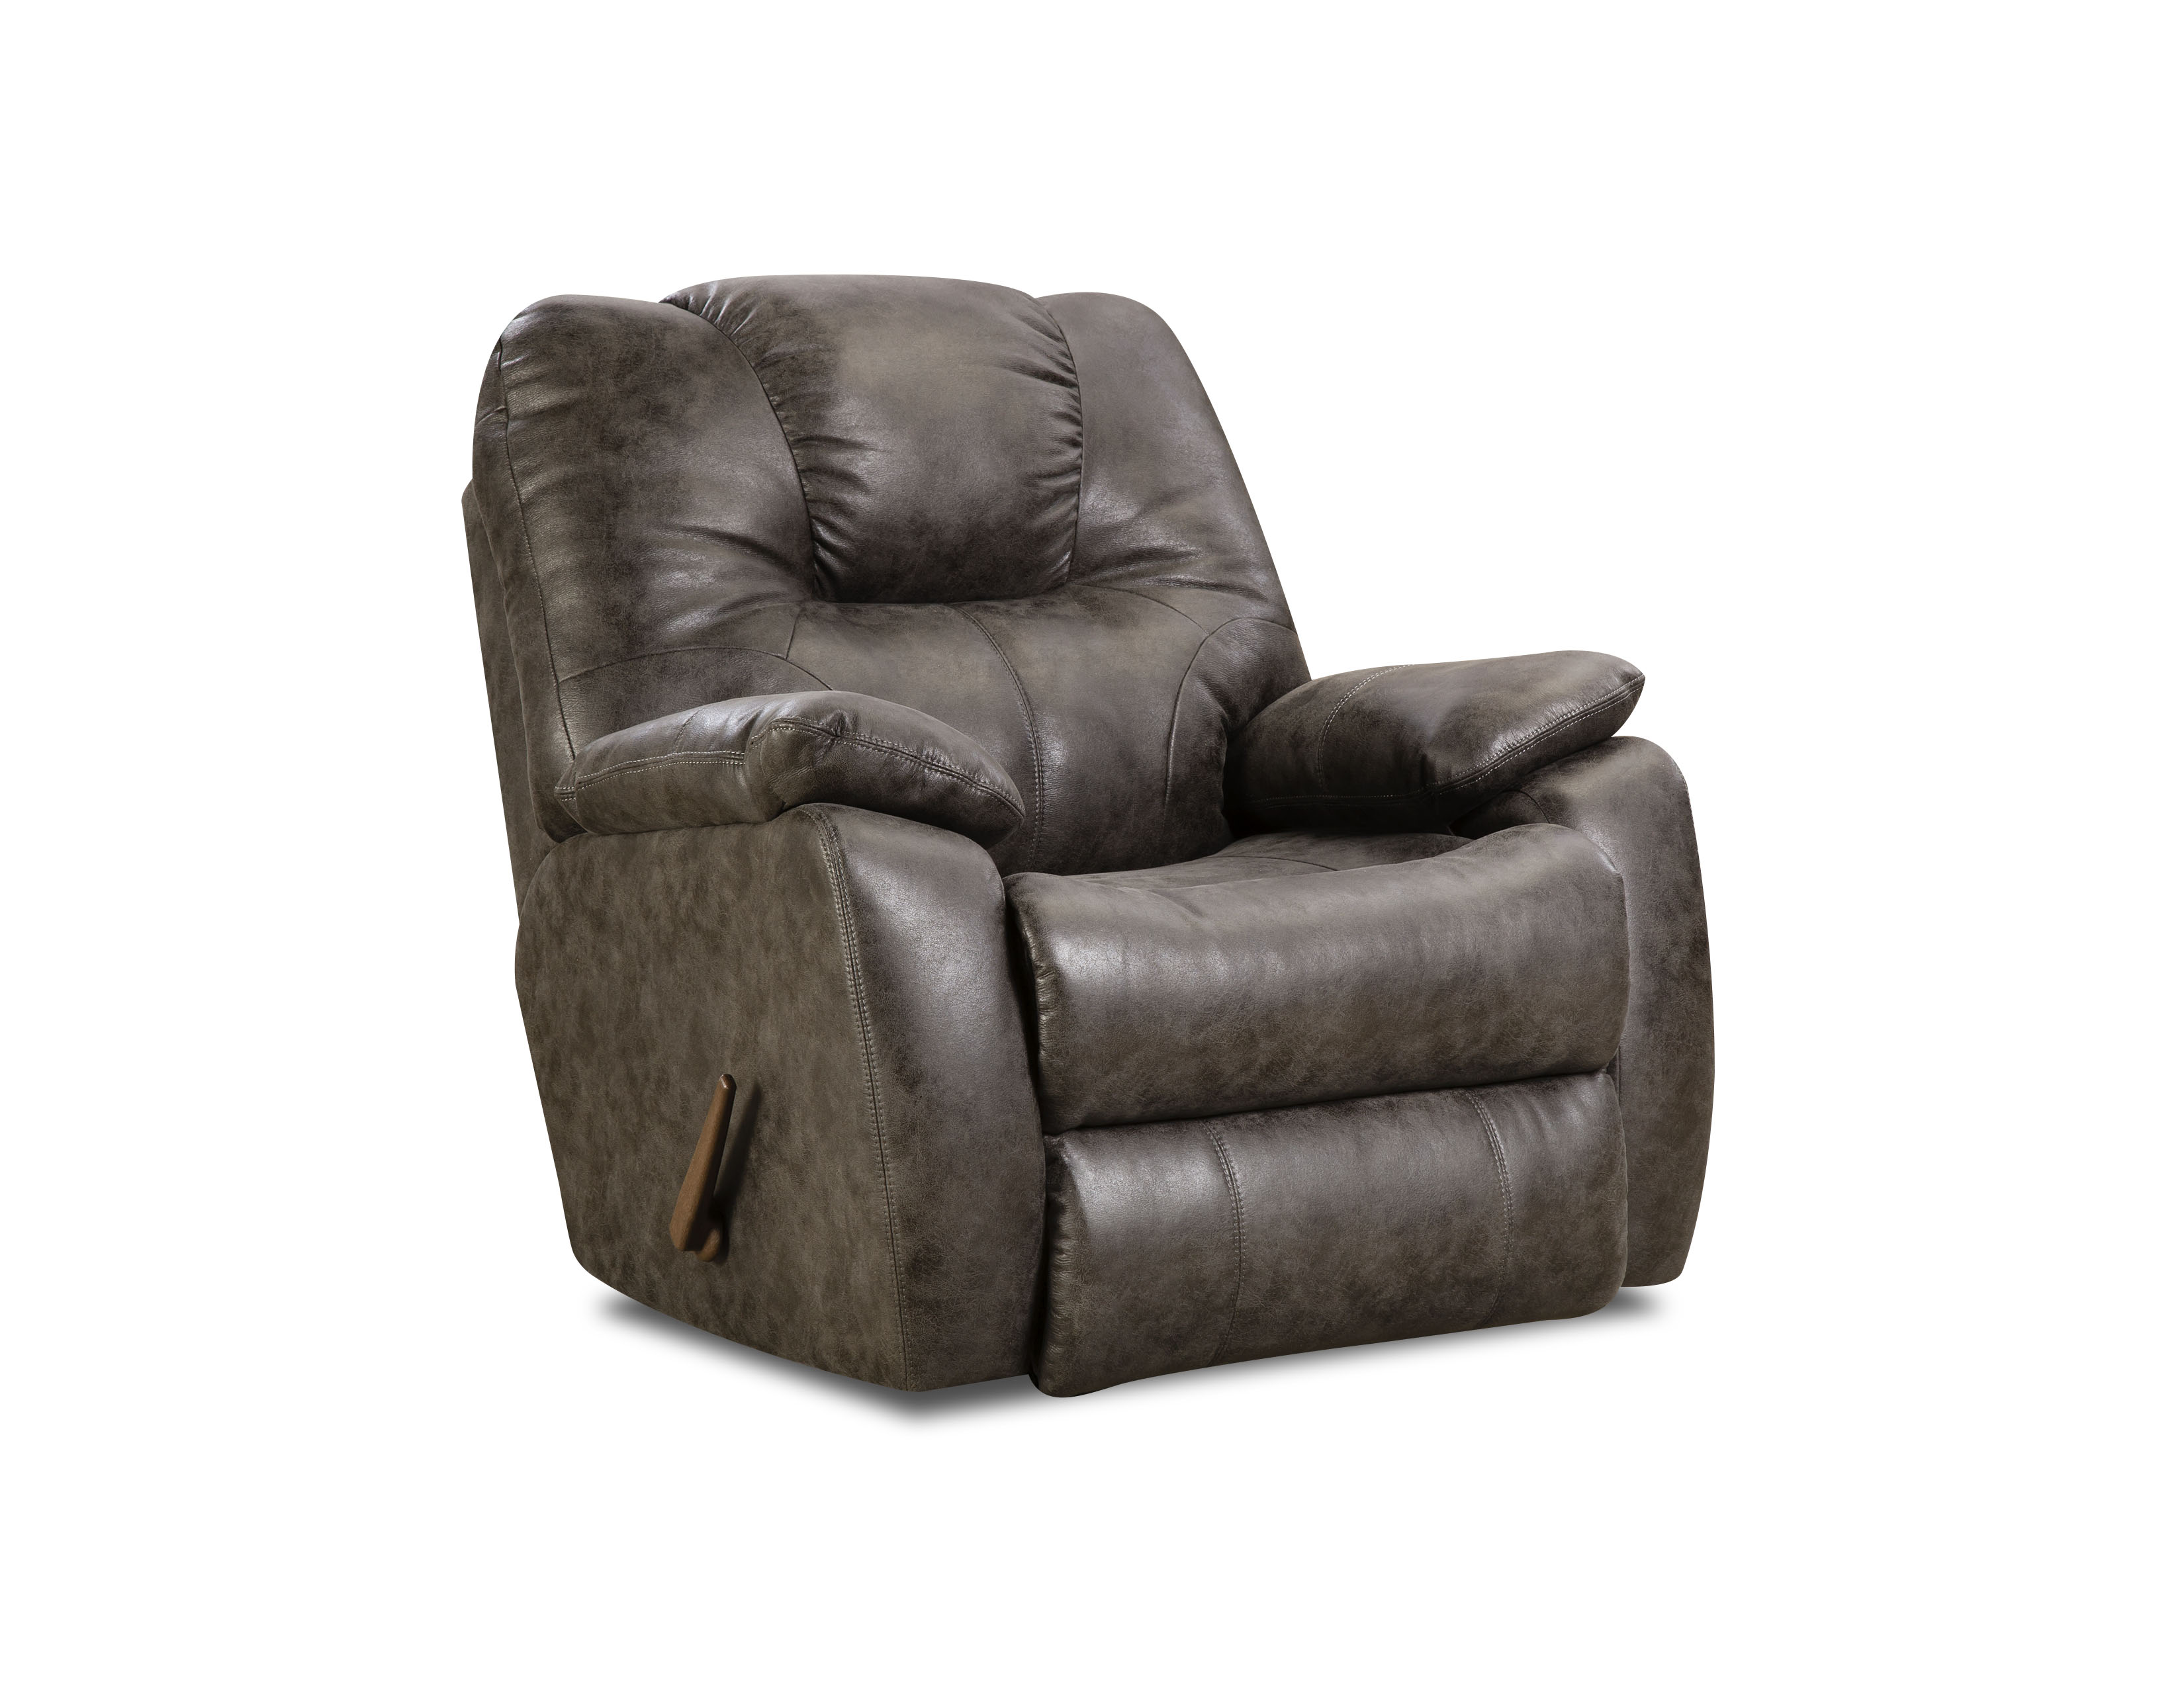 1838-ROCKER-RECLINER-CLSD-IN-240-14-EMPIRE-CHARCOAL-SWEEP